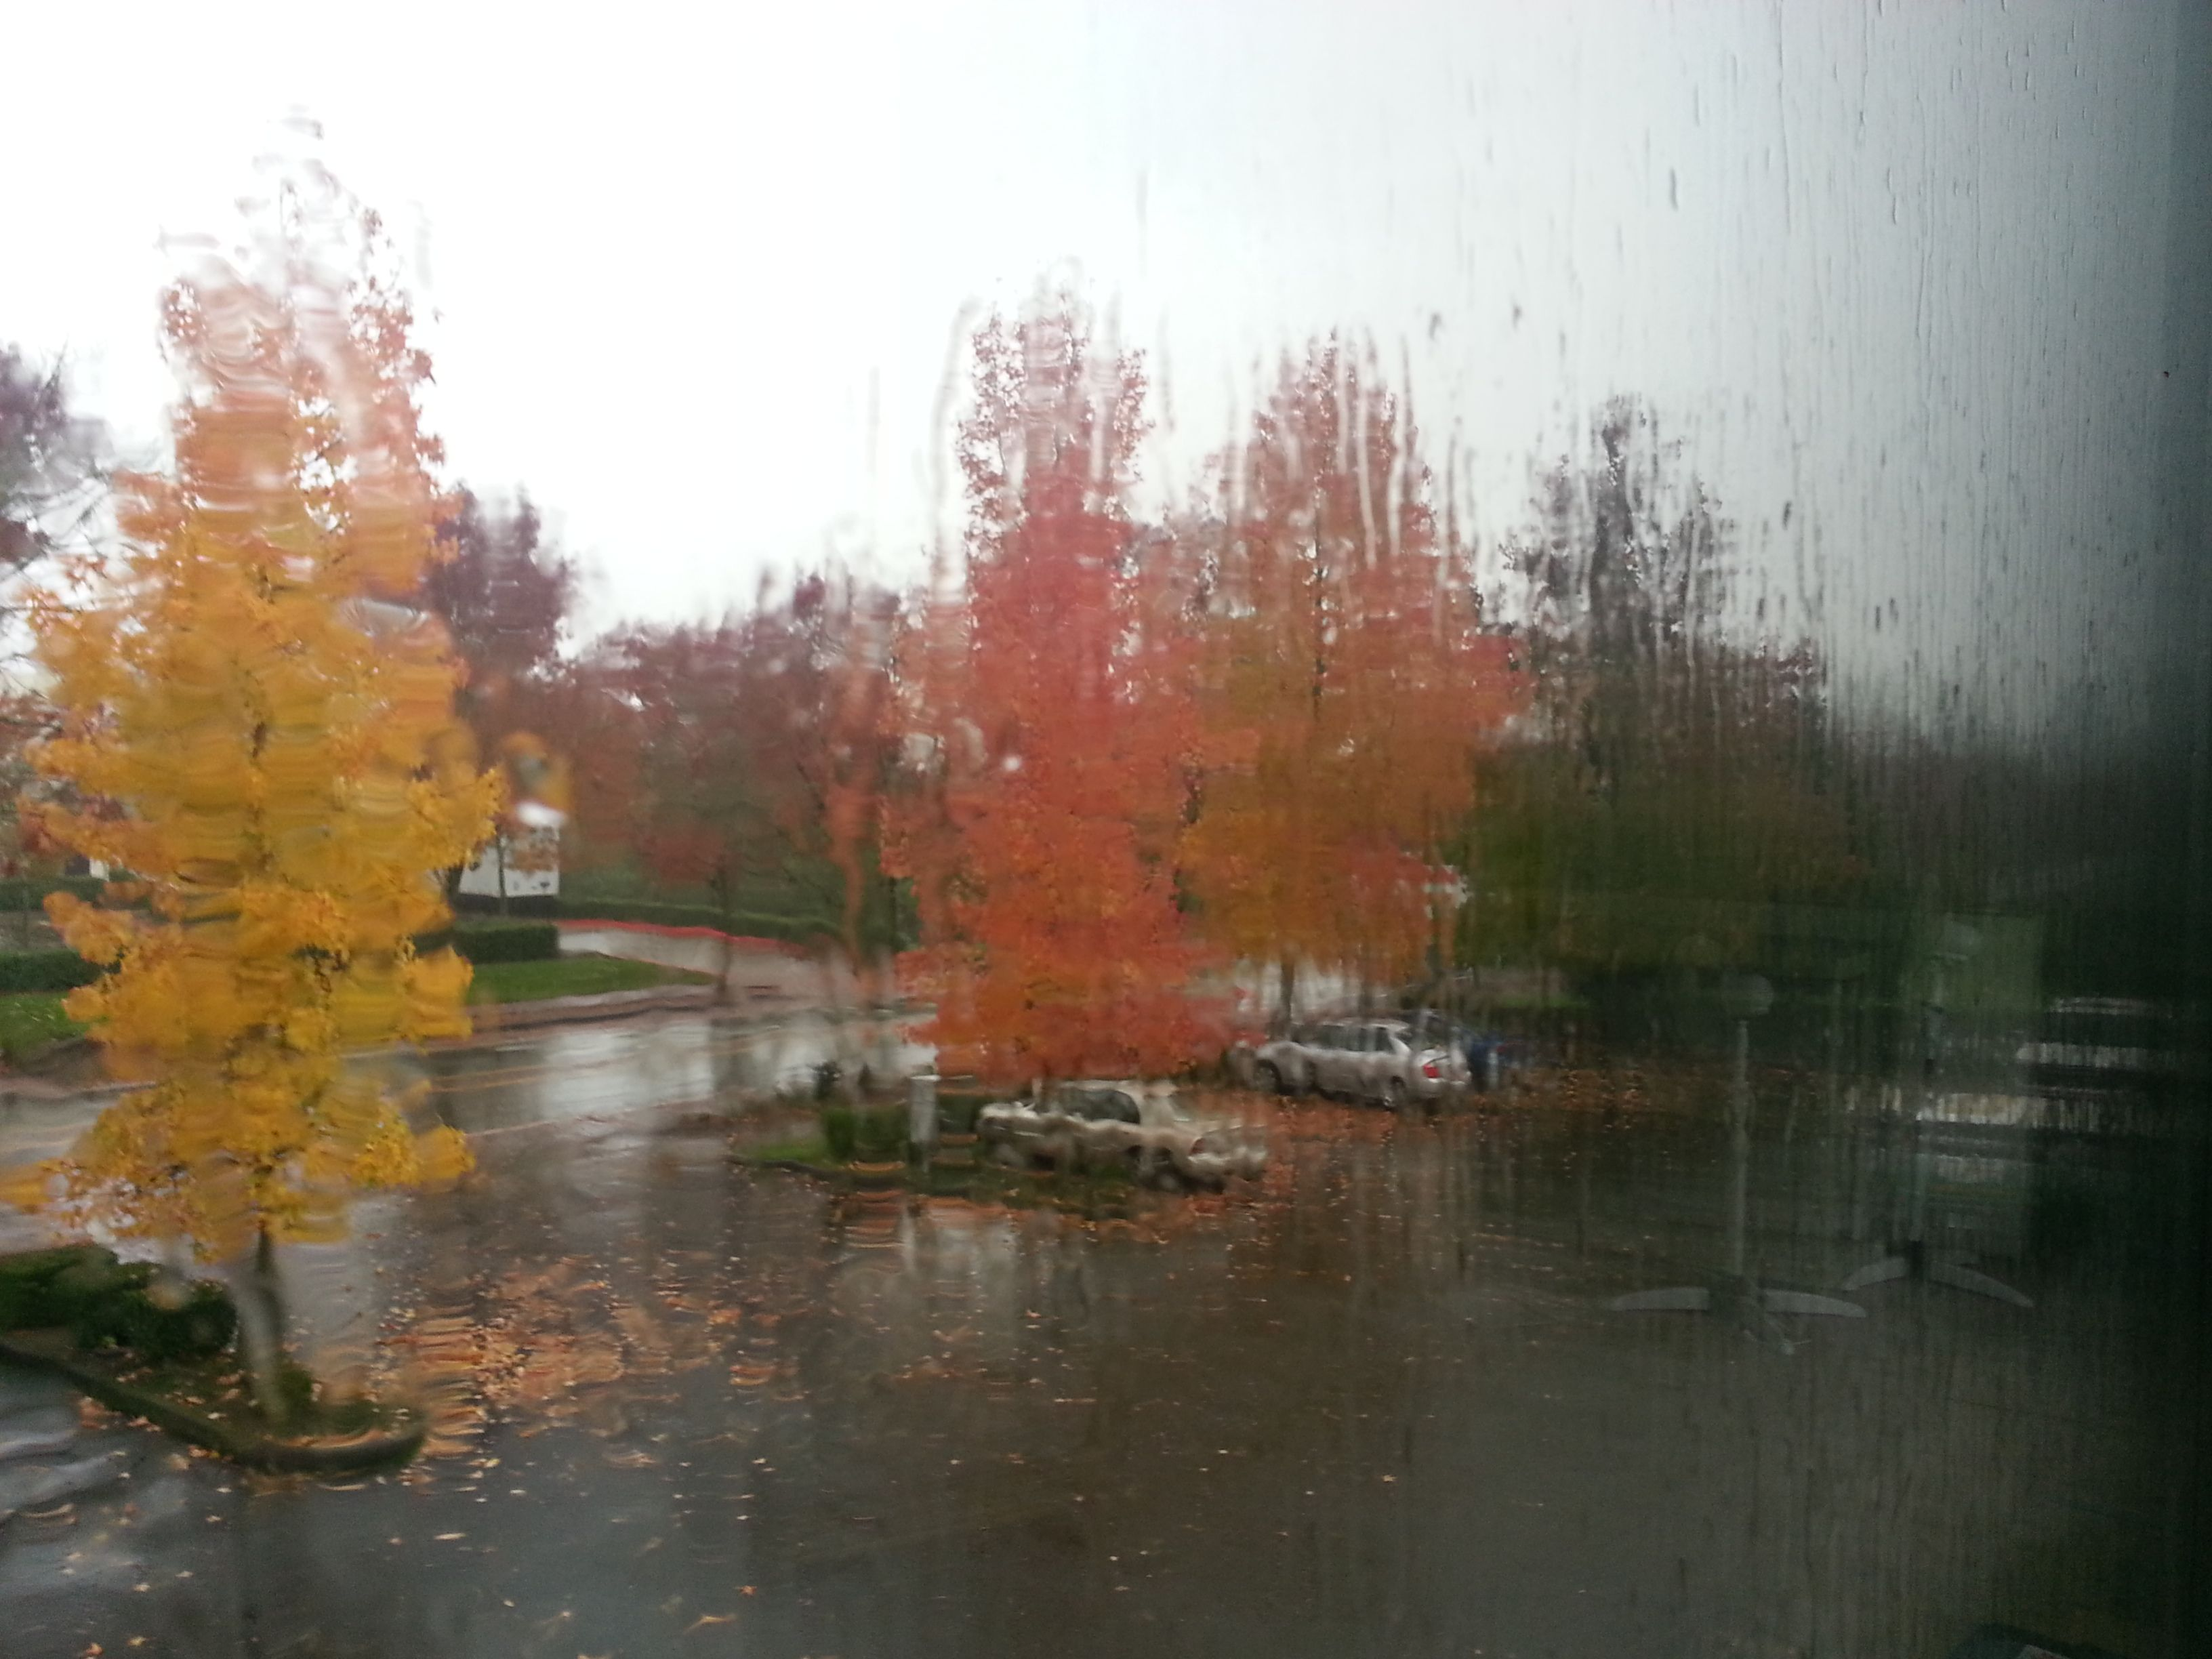 The view from the mezzanine at work today enhances the dripping effect of the rain, it also washes out the brilliance of autumn, until the sun pops out again.